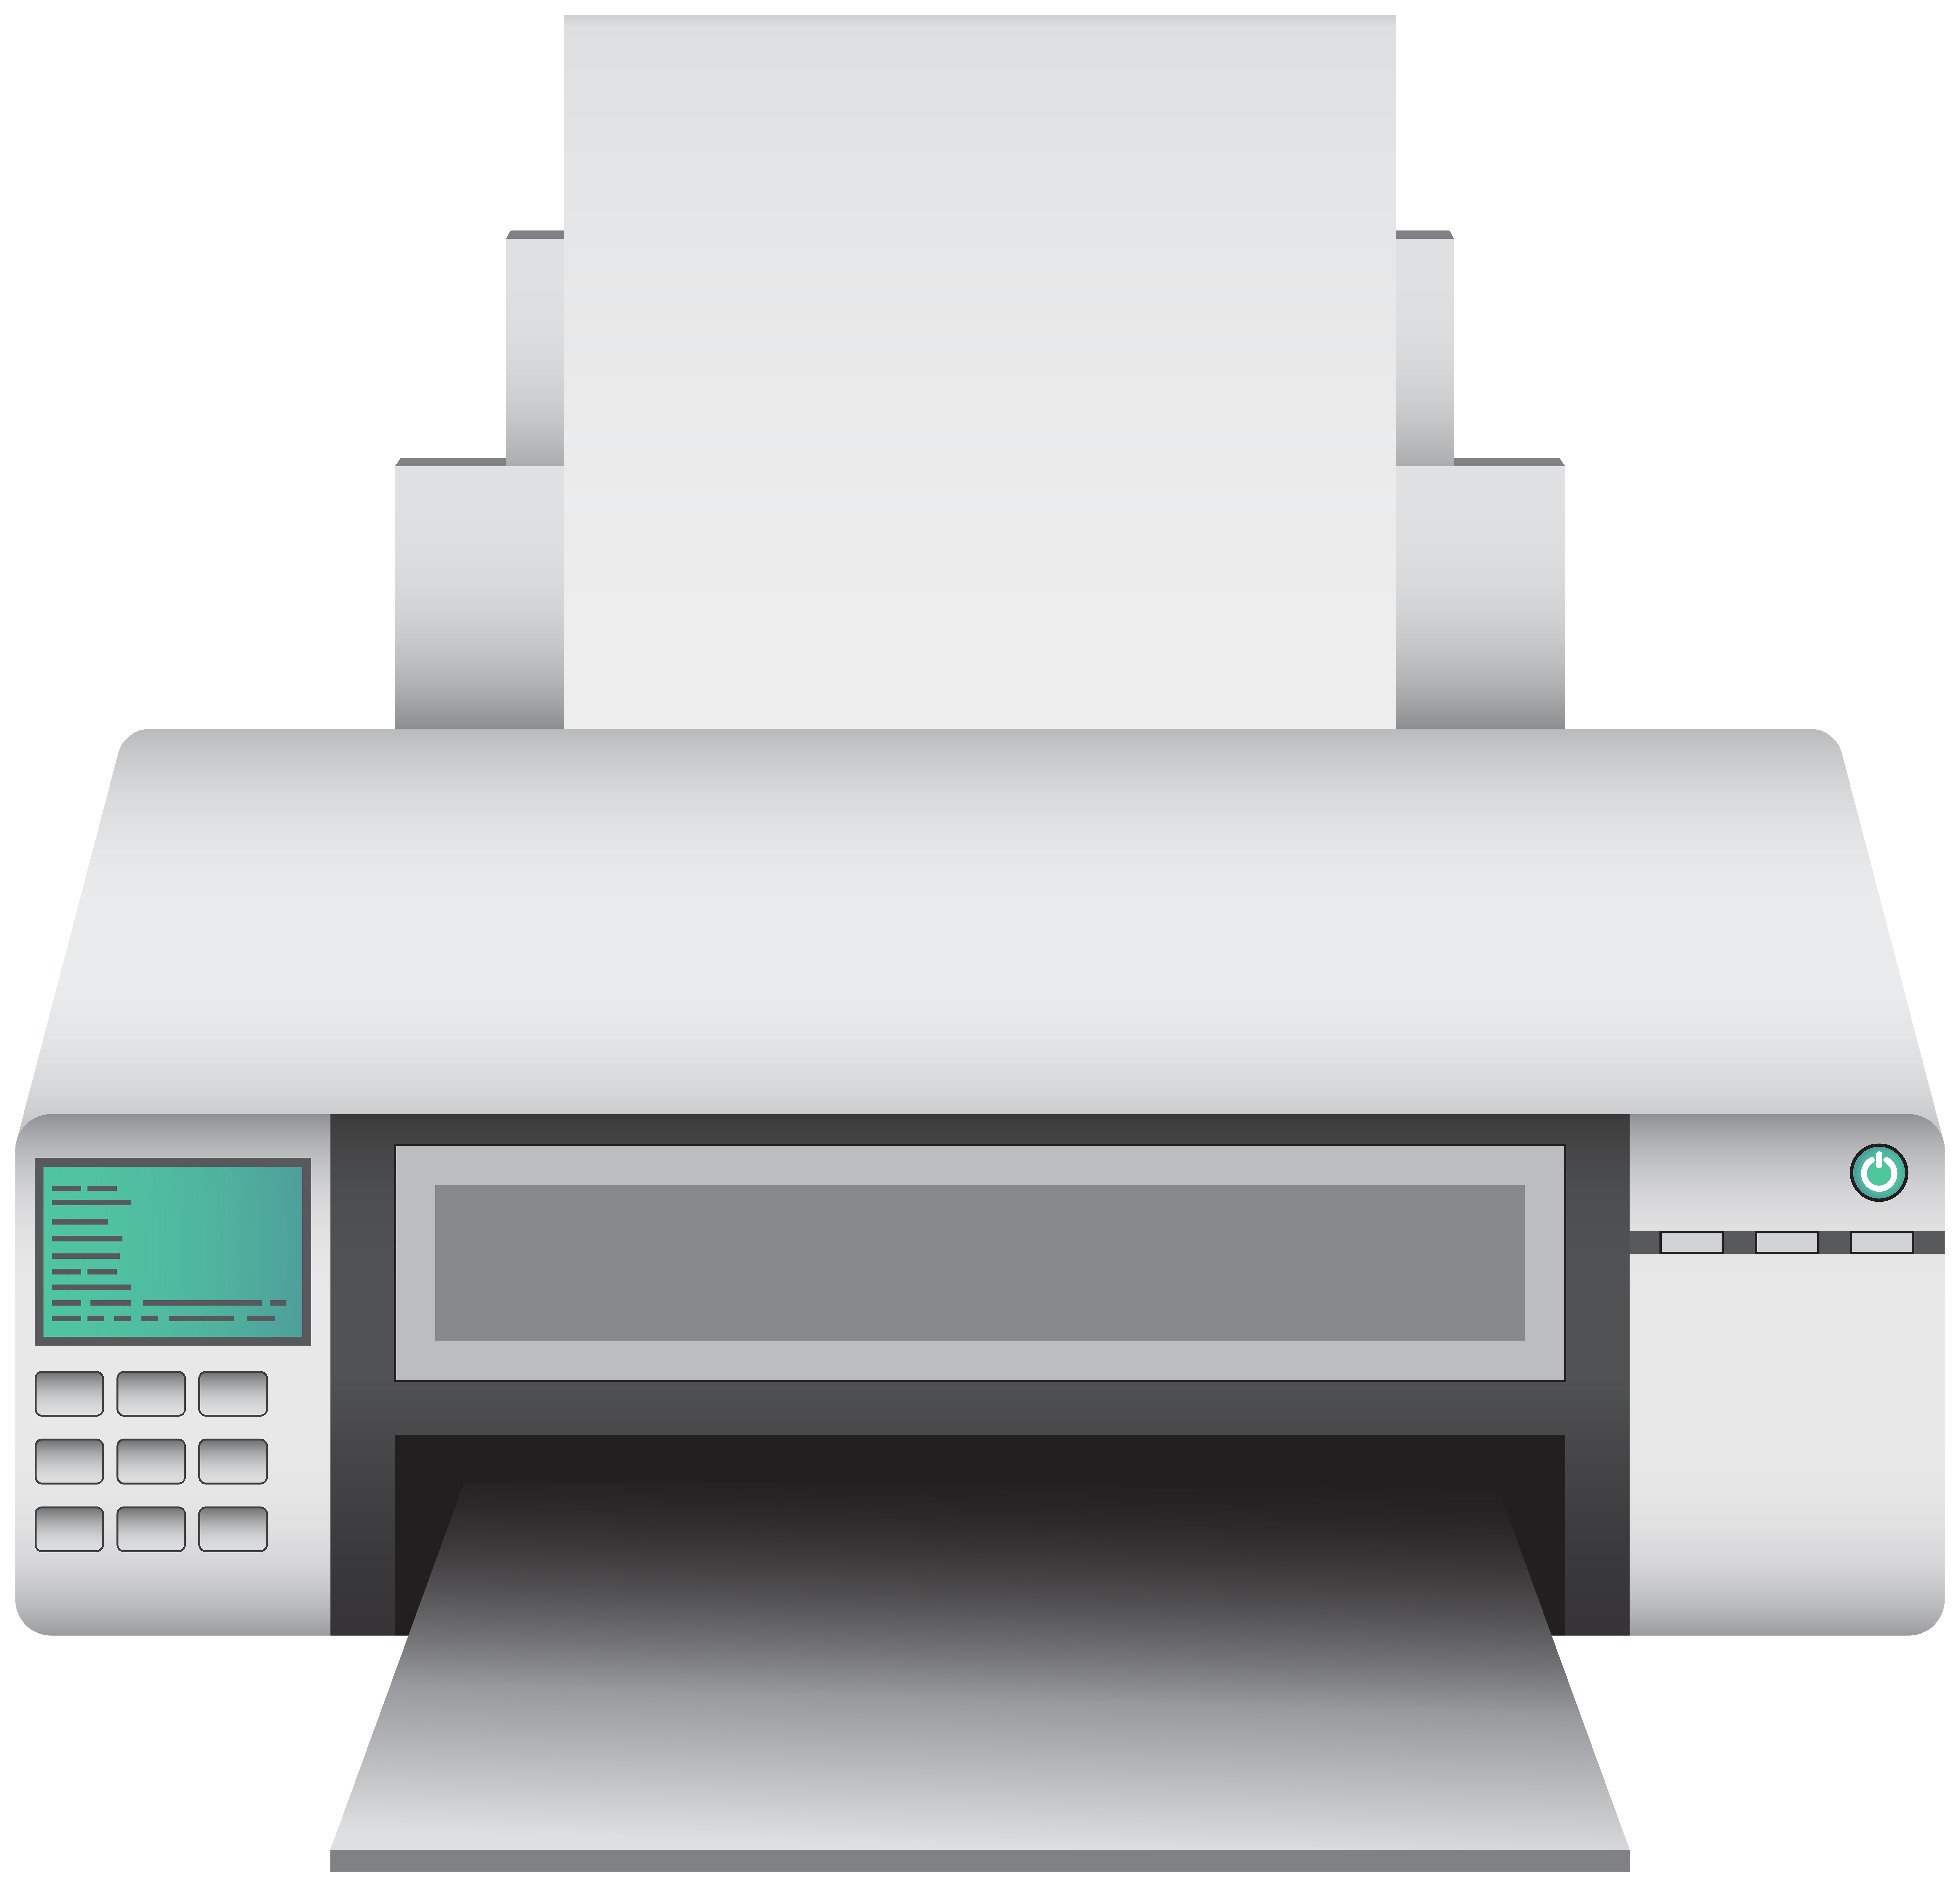 svg black and white Printer clipart. Png clip art best.